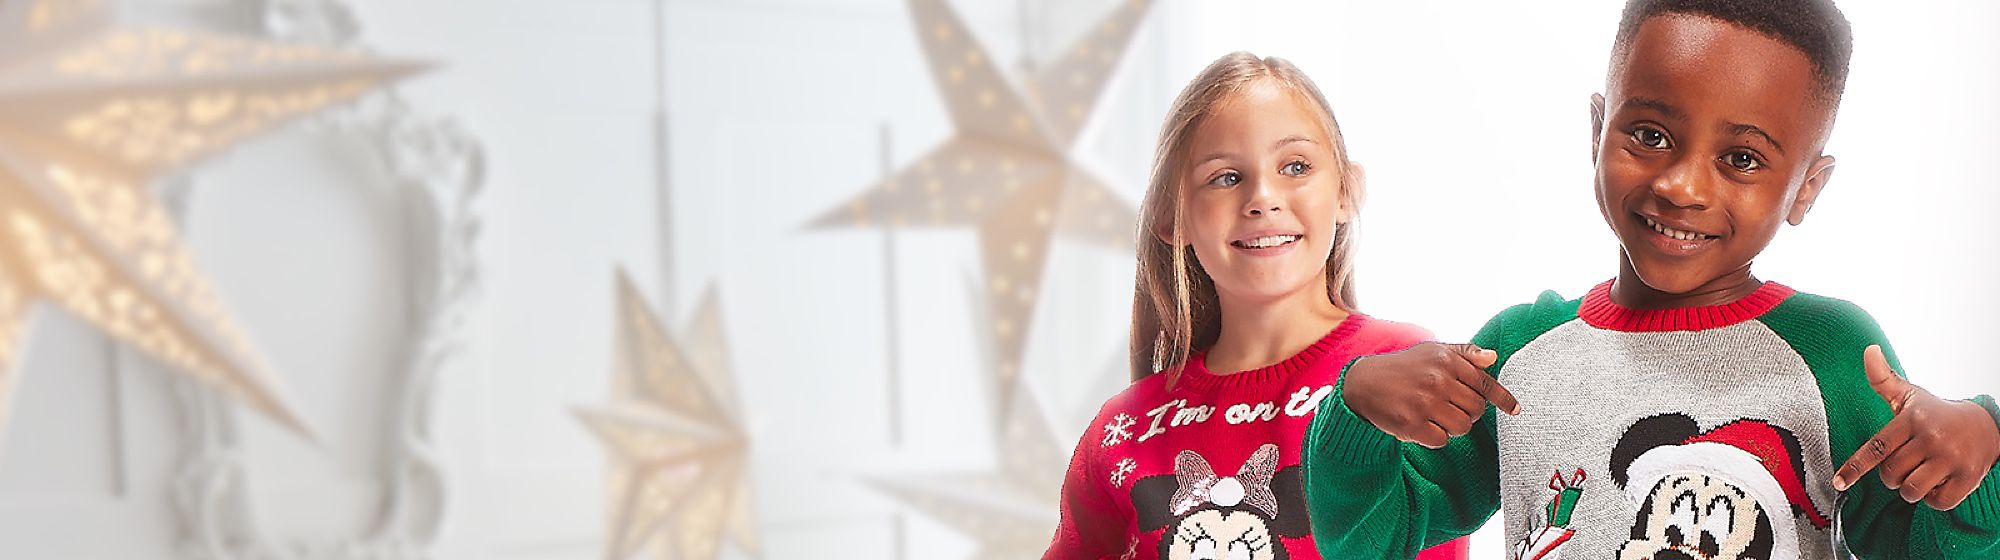 Christmas Fashion They'll feel festive and fancy with our Christmas clothing collections